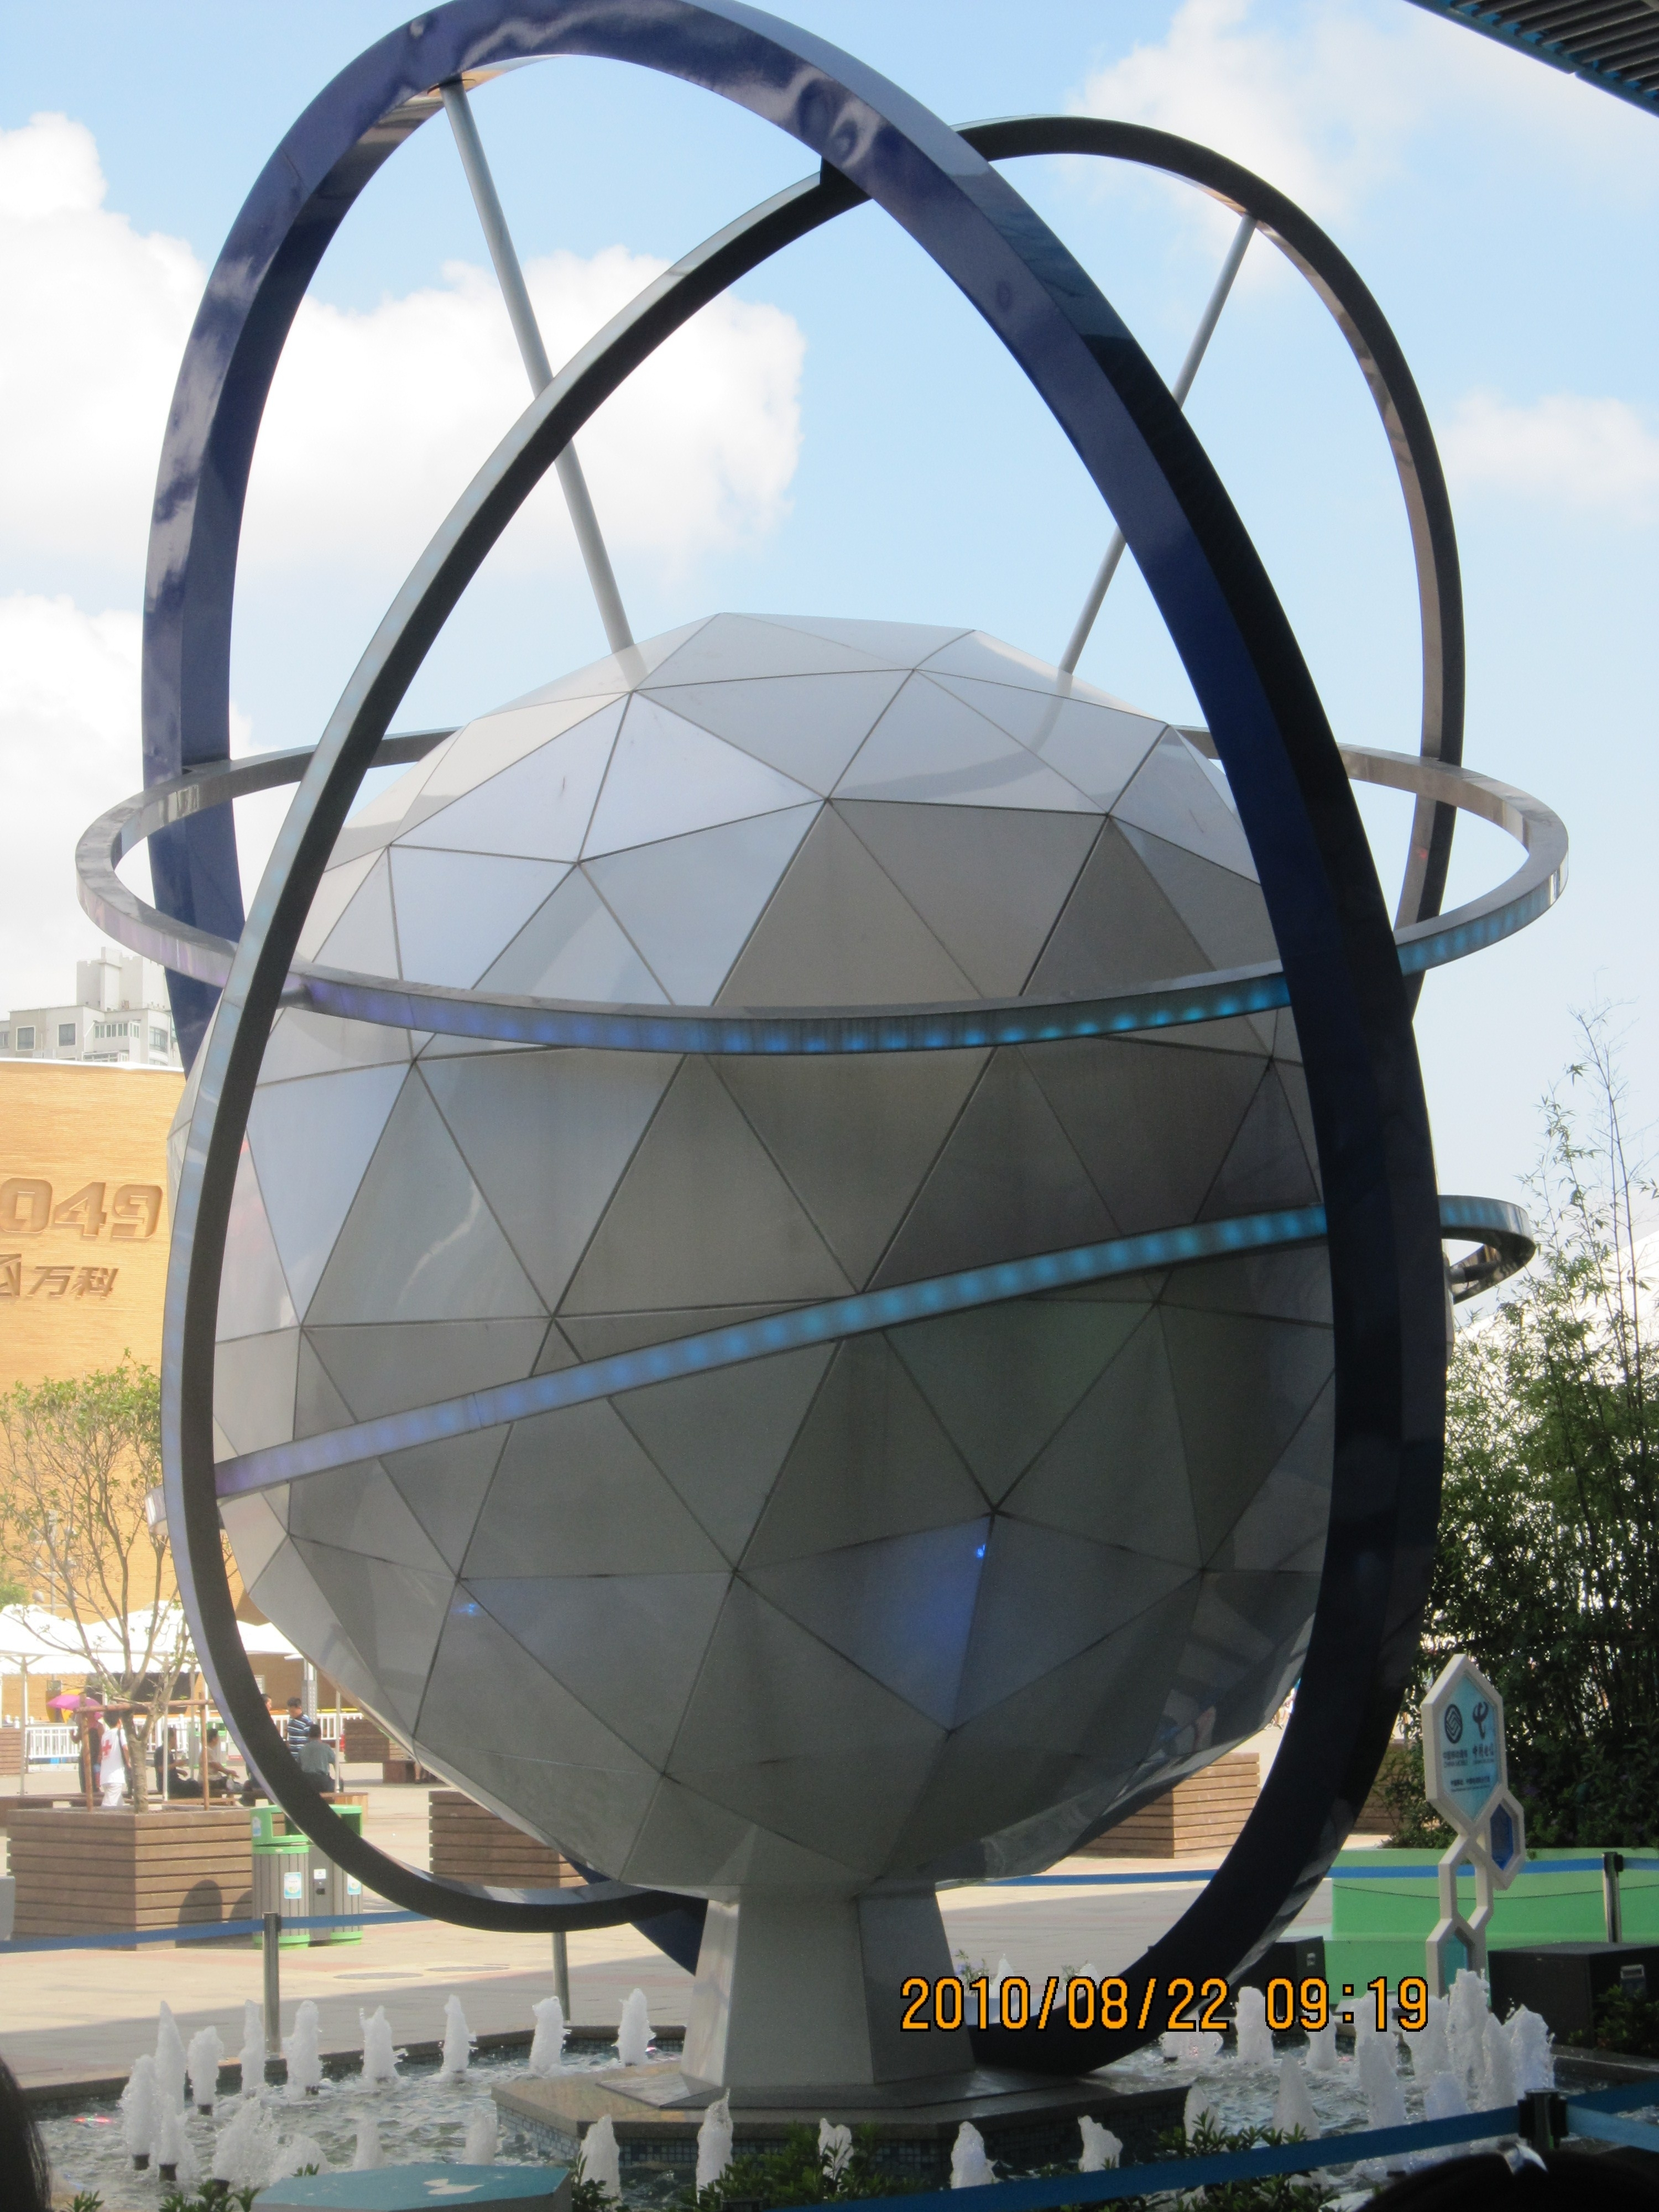 Sculpture in front of the science and technology pavilion.